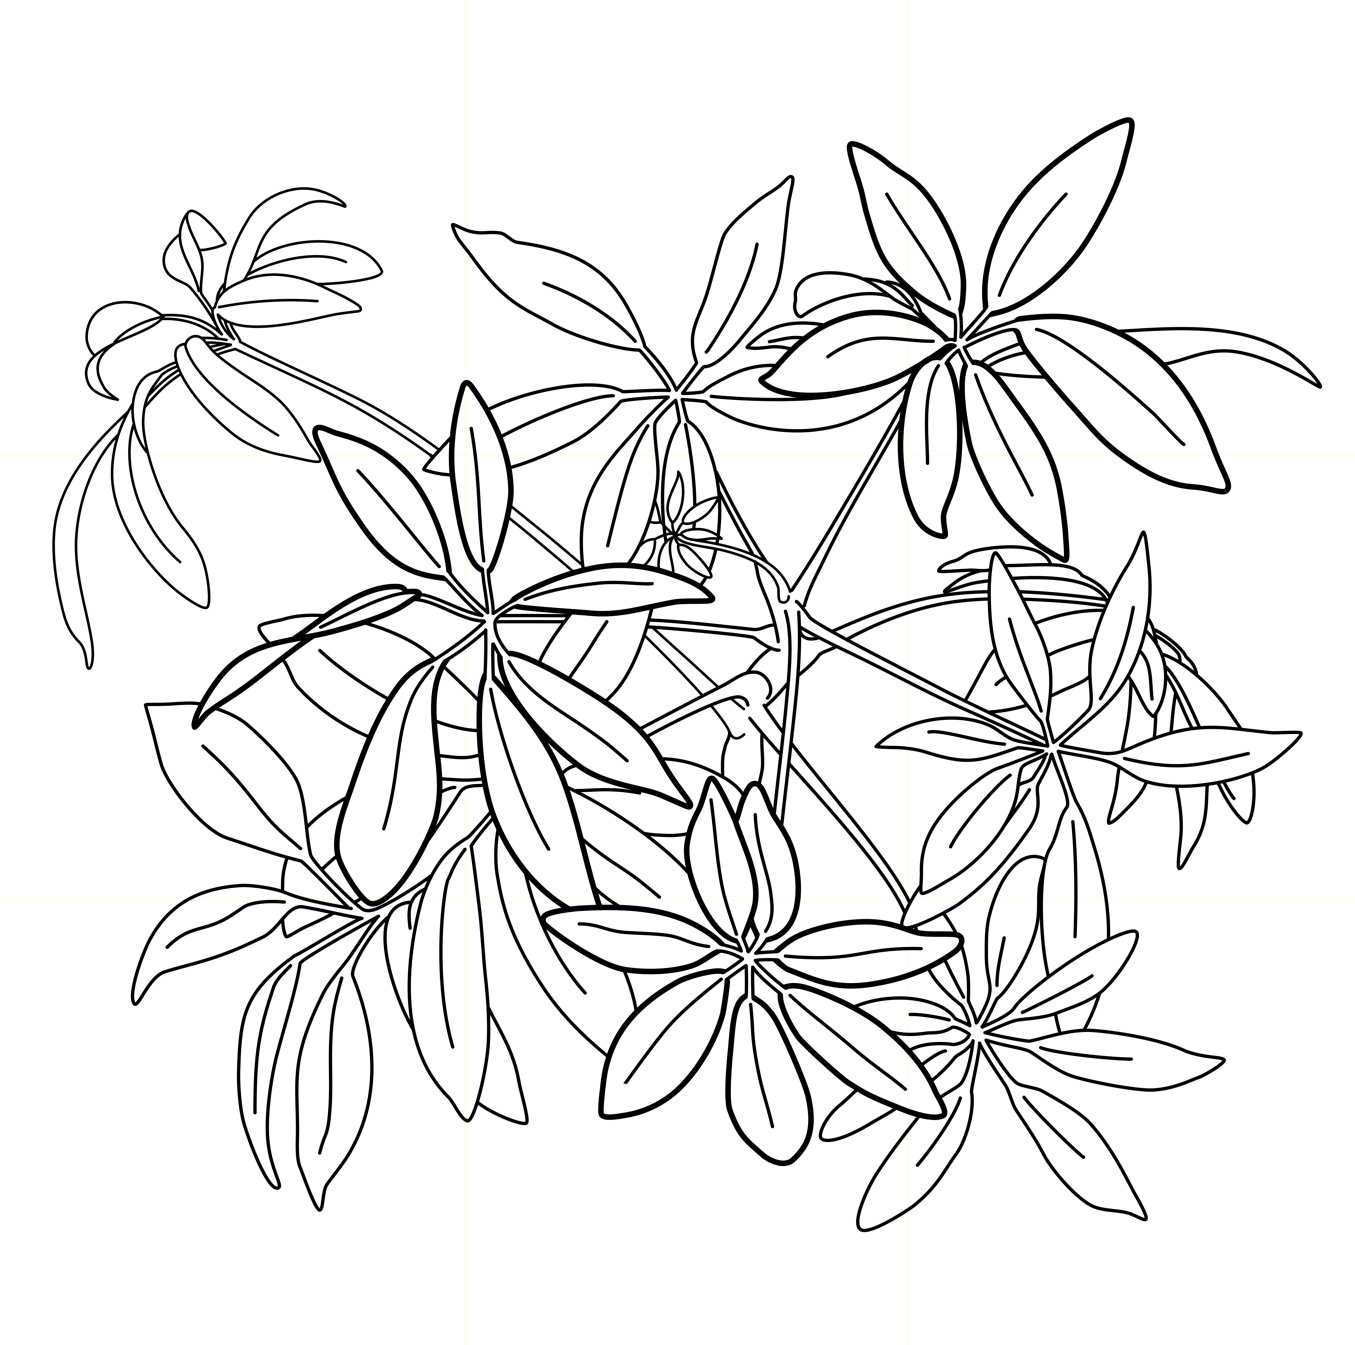 Fireworks - Vector drawing formatted for engraving